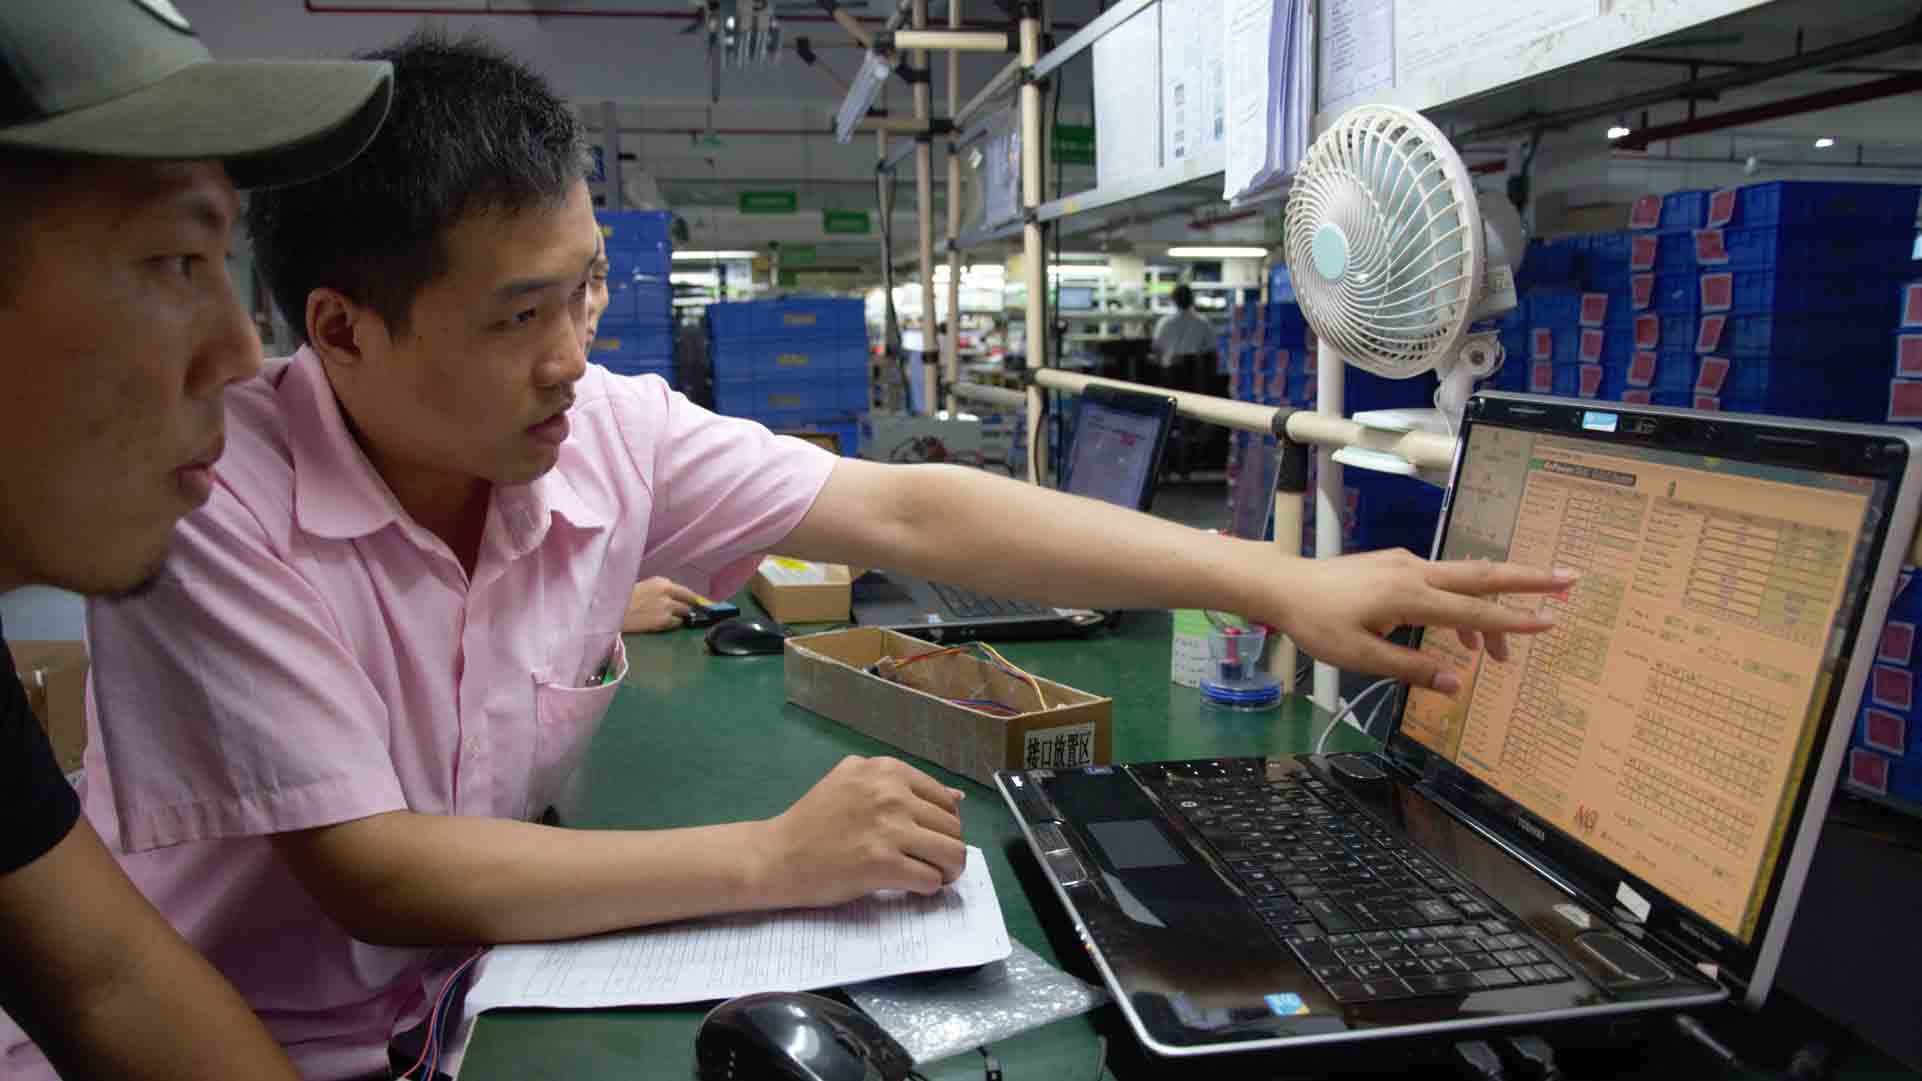 A man pointing to a laptop in a factory.